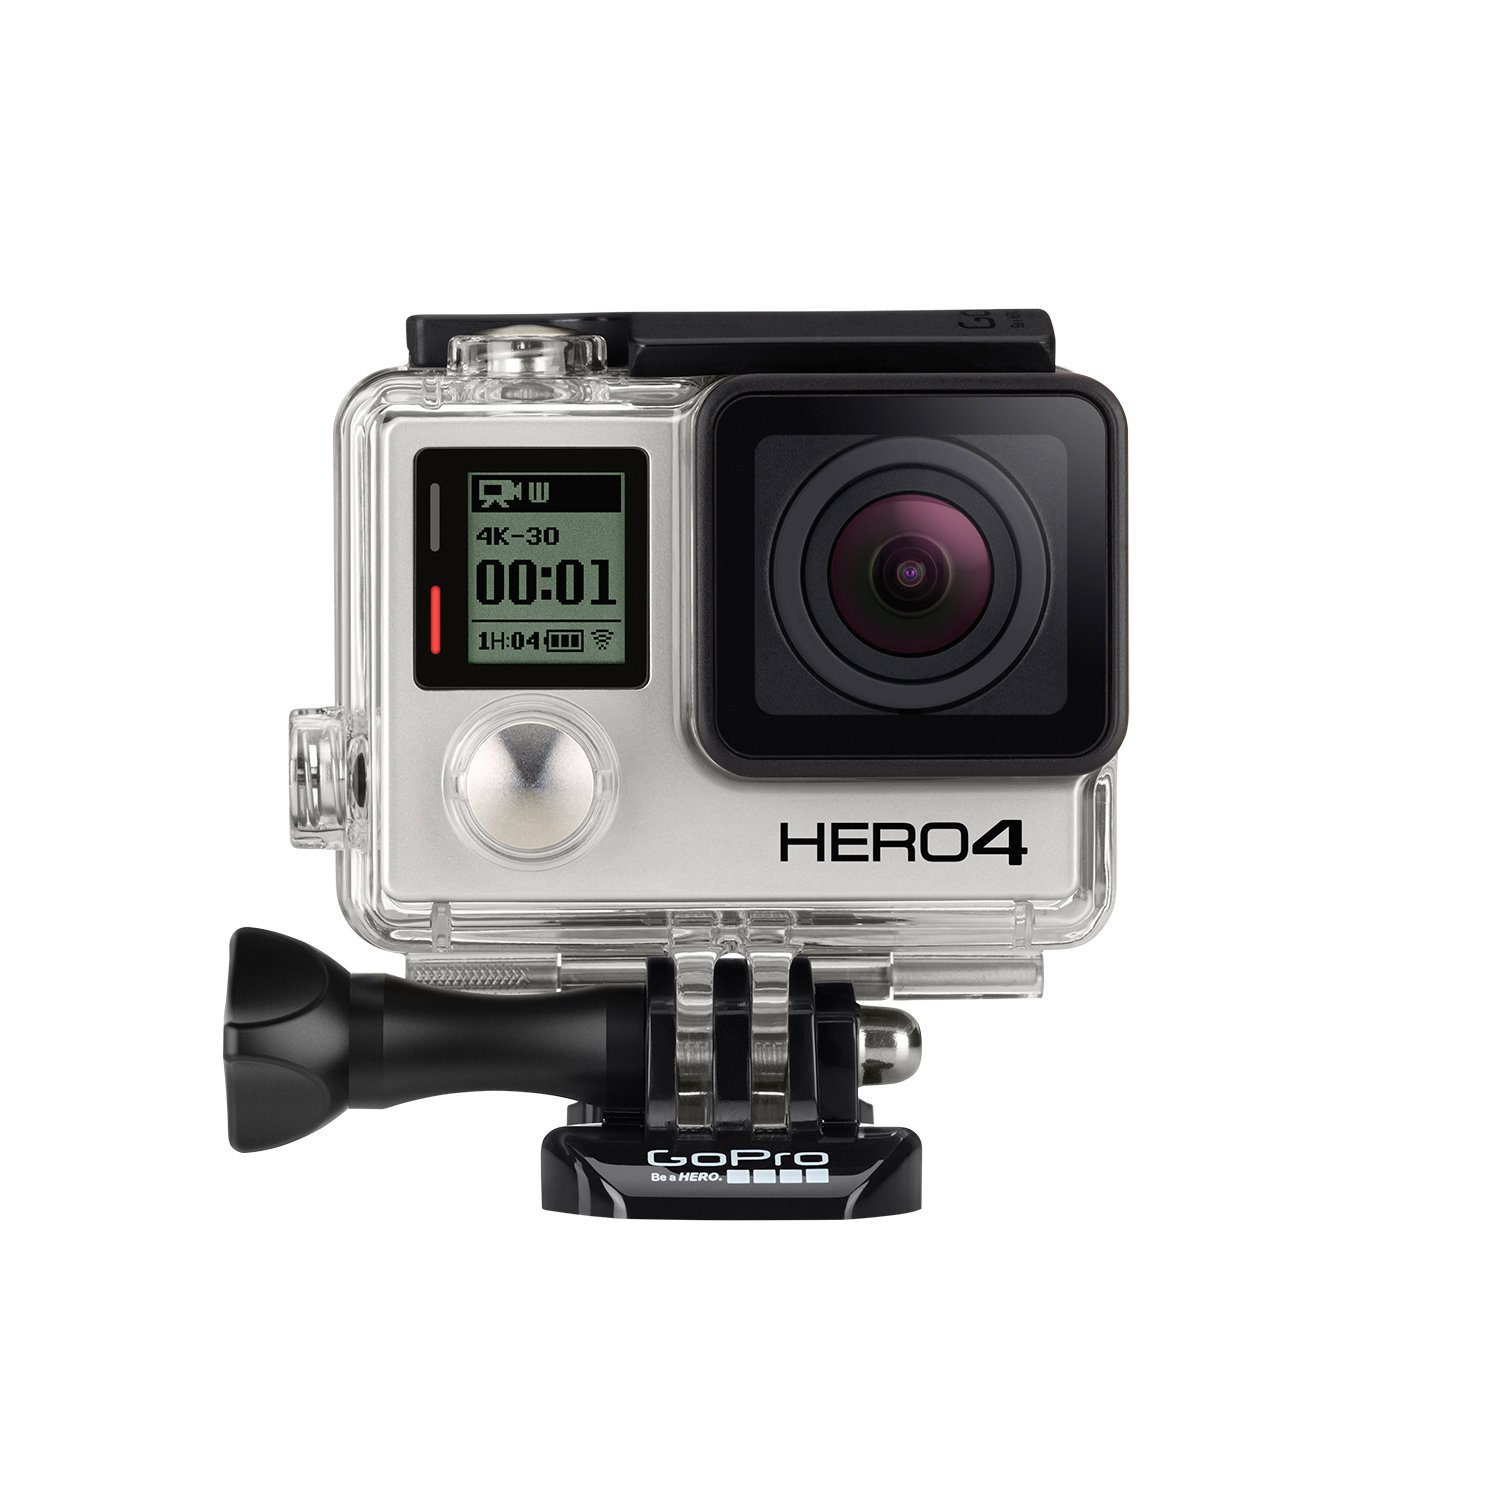 gopro, gopro hero4, waterproof camera, digital camera, waterproof digital camera, camera, digital camera reviews, best digital camera, best digital camera, canon digital cameras, nikon digital cameras, underwater digital camera